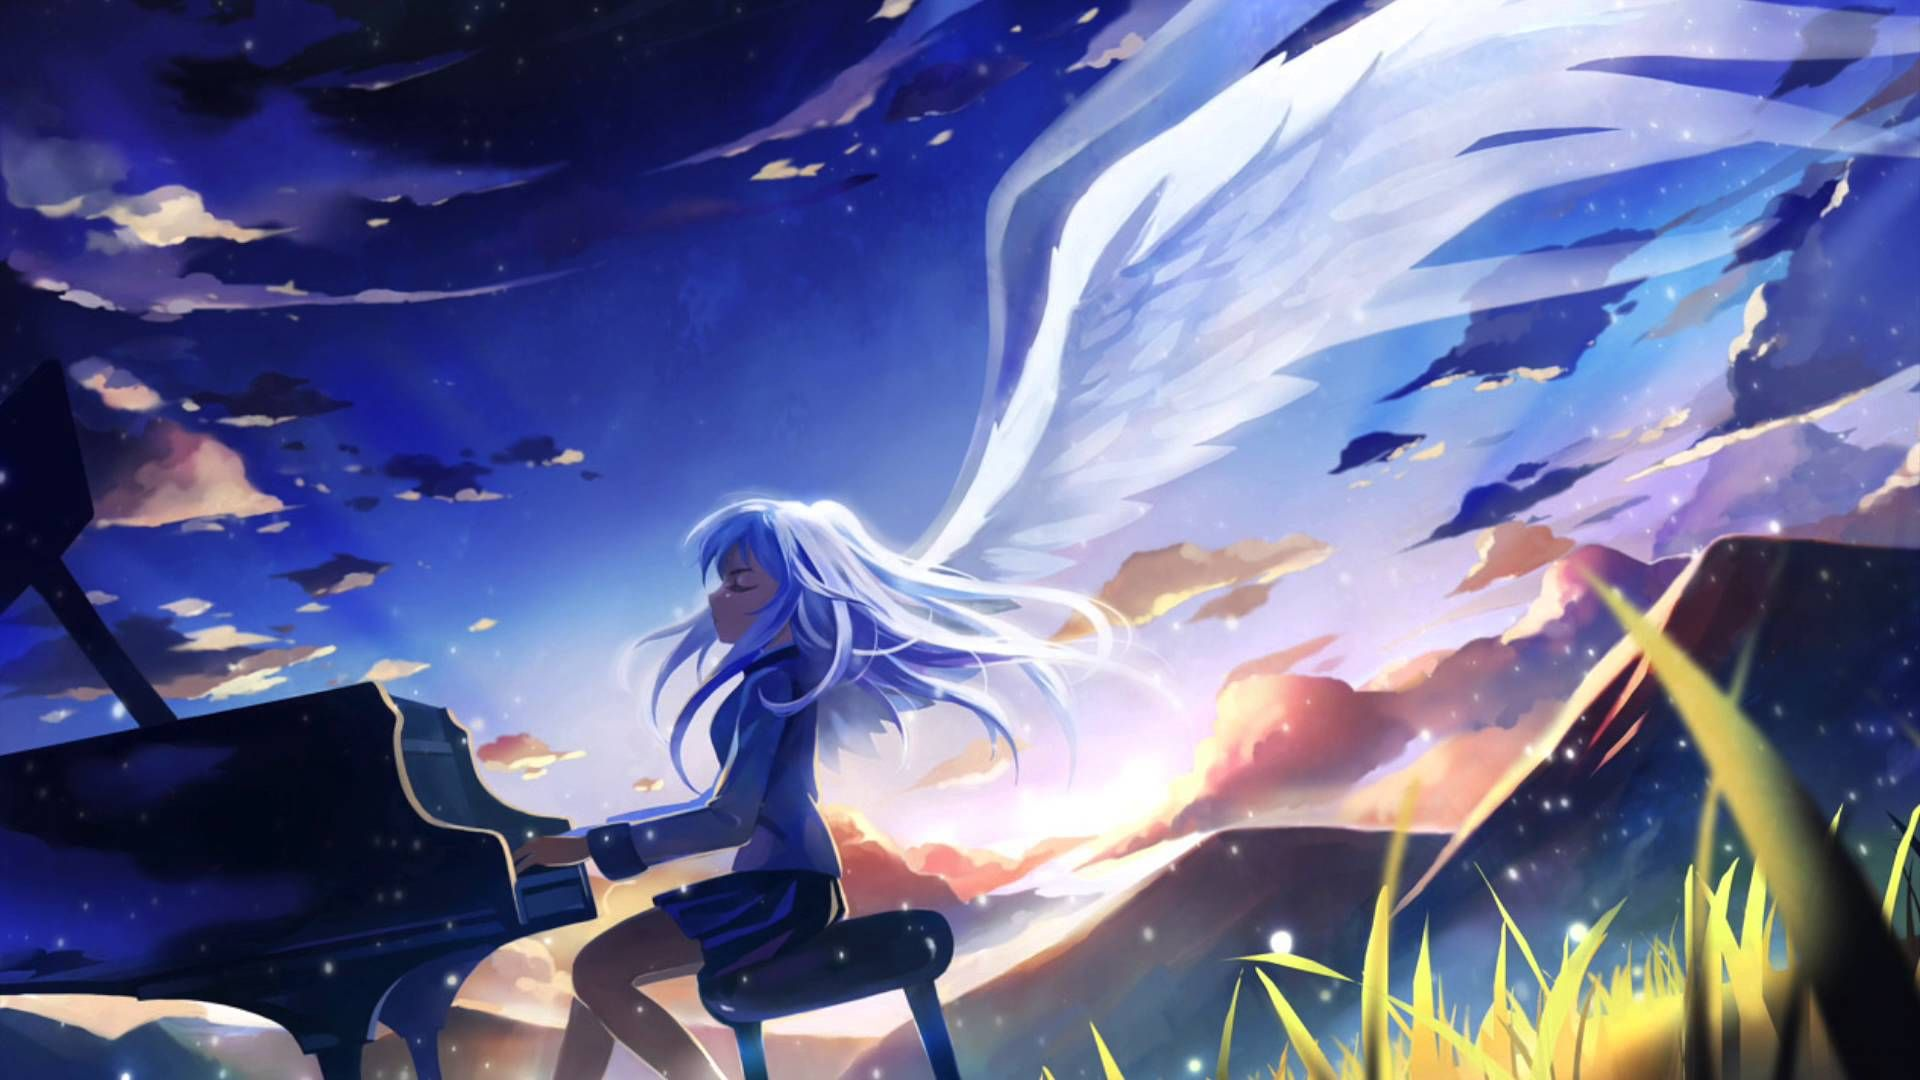 Awesome Anime Music Piano Mountains Wallpaper For Backgrounds